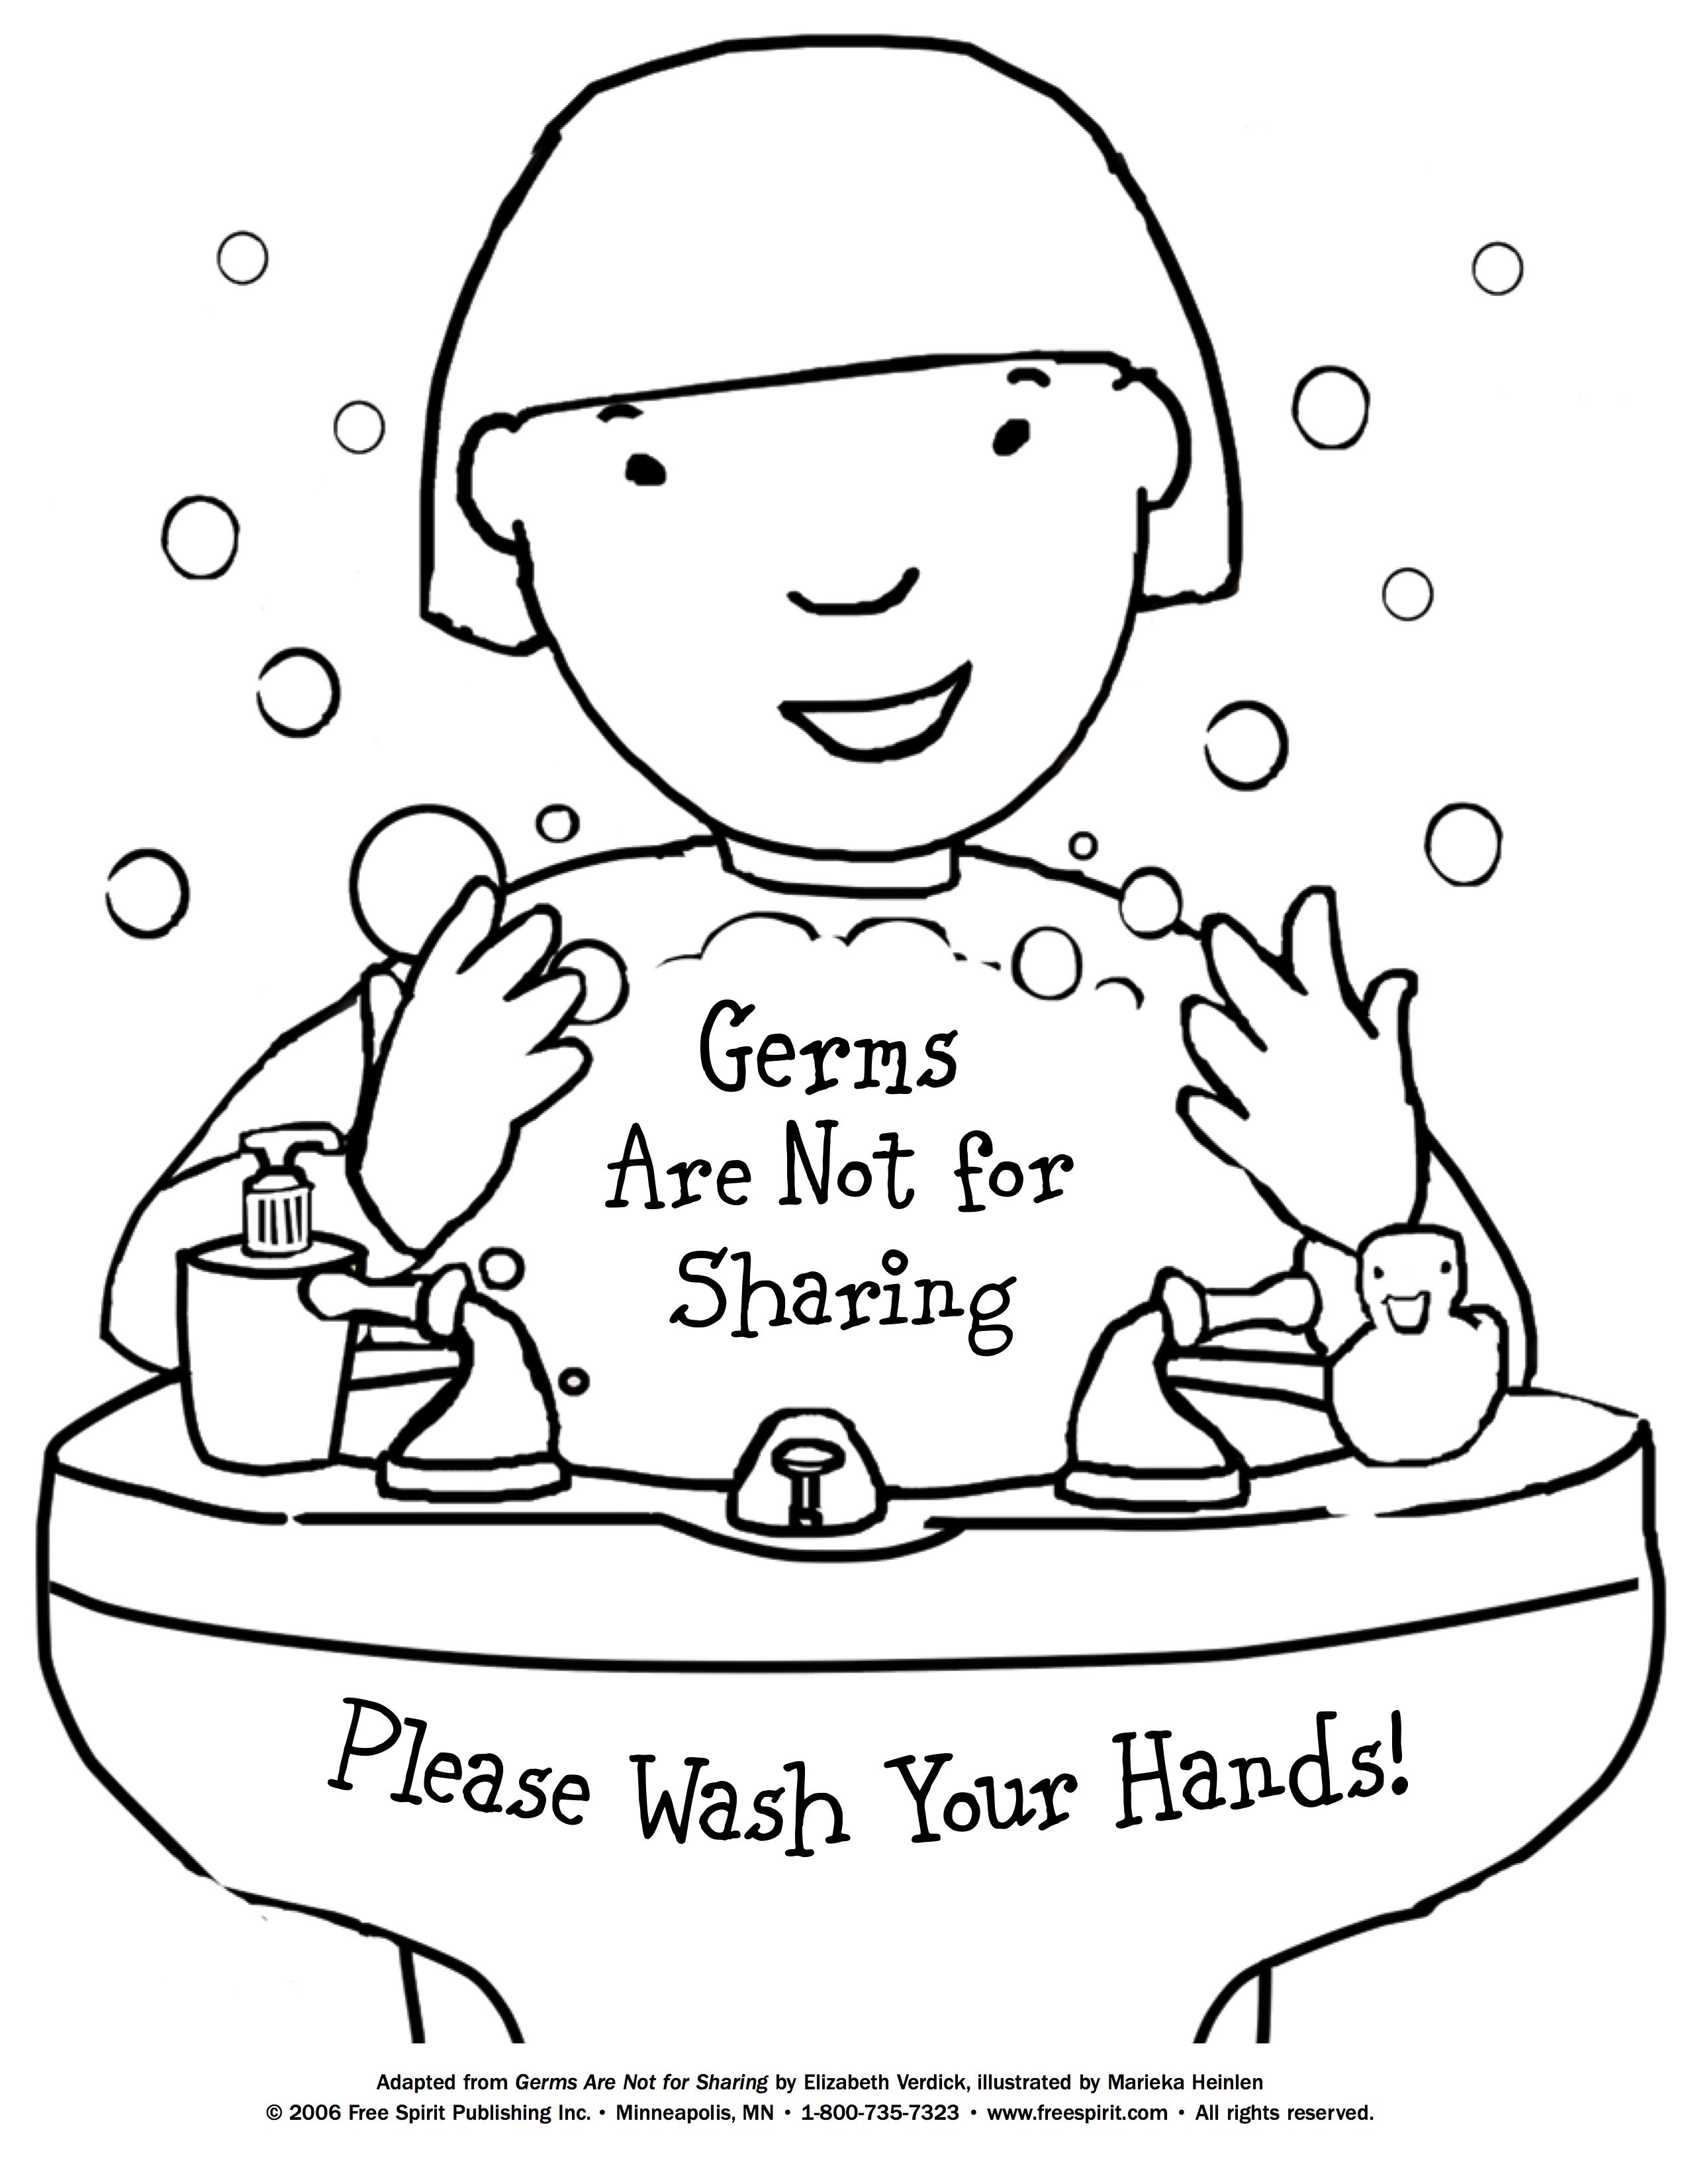 Free Printable Coloring Page To Teach Kids About Hygiene: Germs Are - Free Printable Good Touch Bad Touch Coloring Book